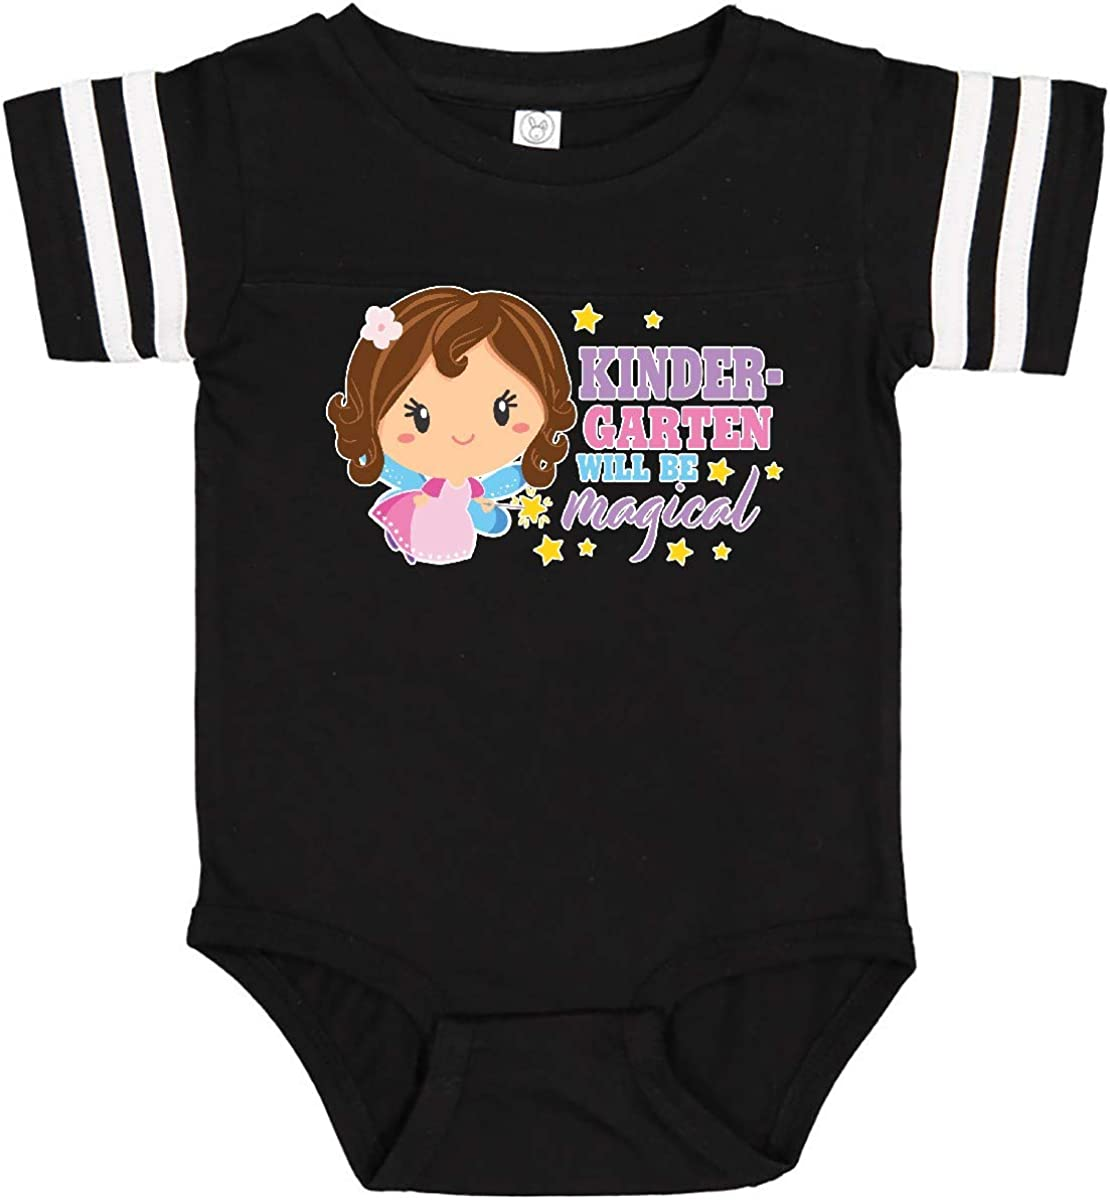 inktastic Kindergarten Will Be Magical with Brown Haired Fairy Infant Creeper